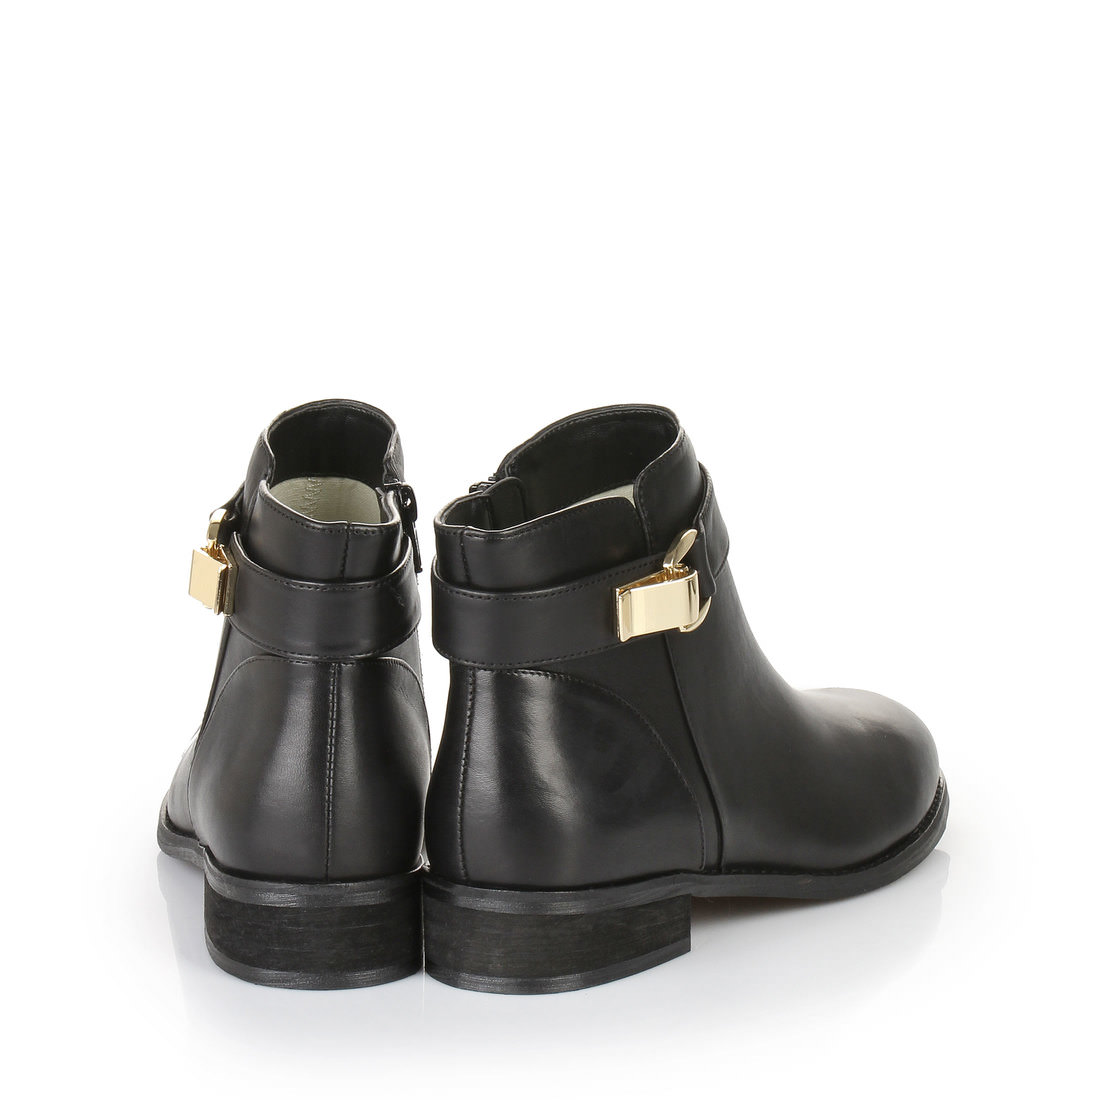 buffalo ankle boots in black buy online in buffalo online shop buffalo. Black Bedroom Furniture Sets. Home Design Ideas